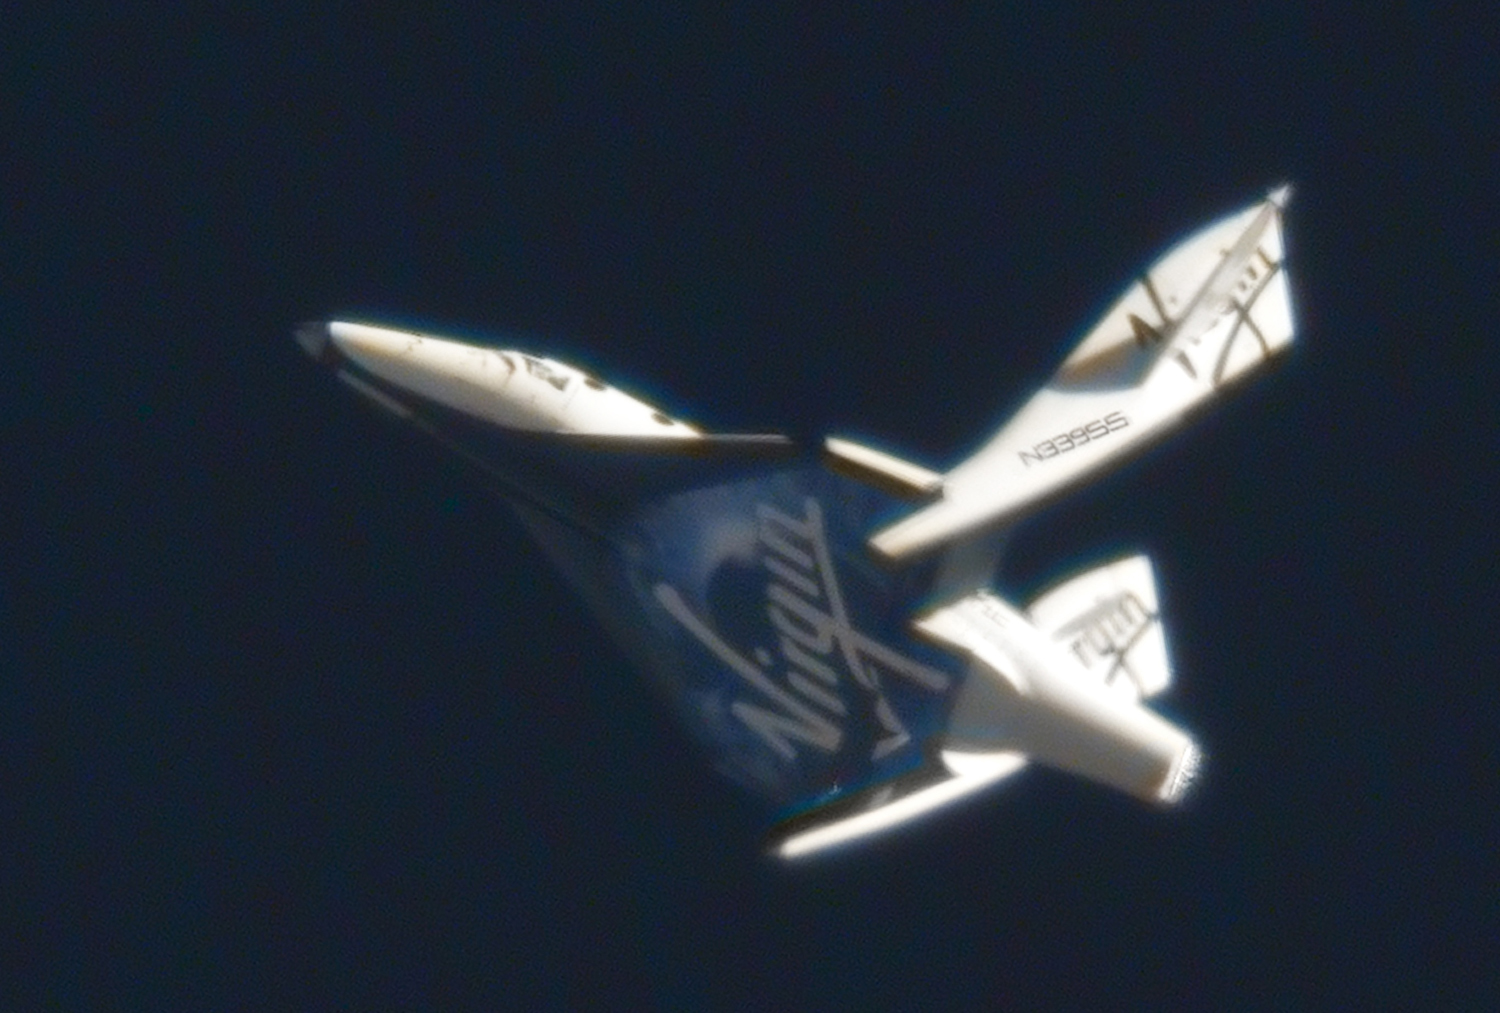 Virgin Galactic's Space Tourist Ship Passes Major Flight Test